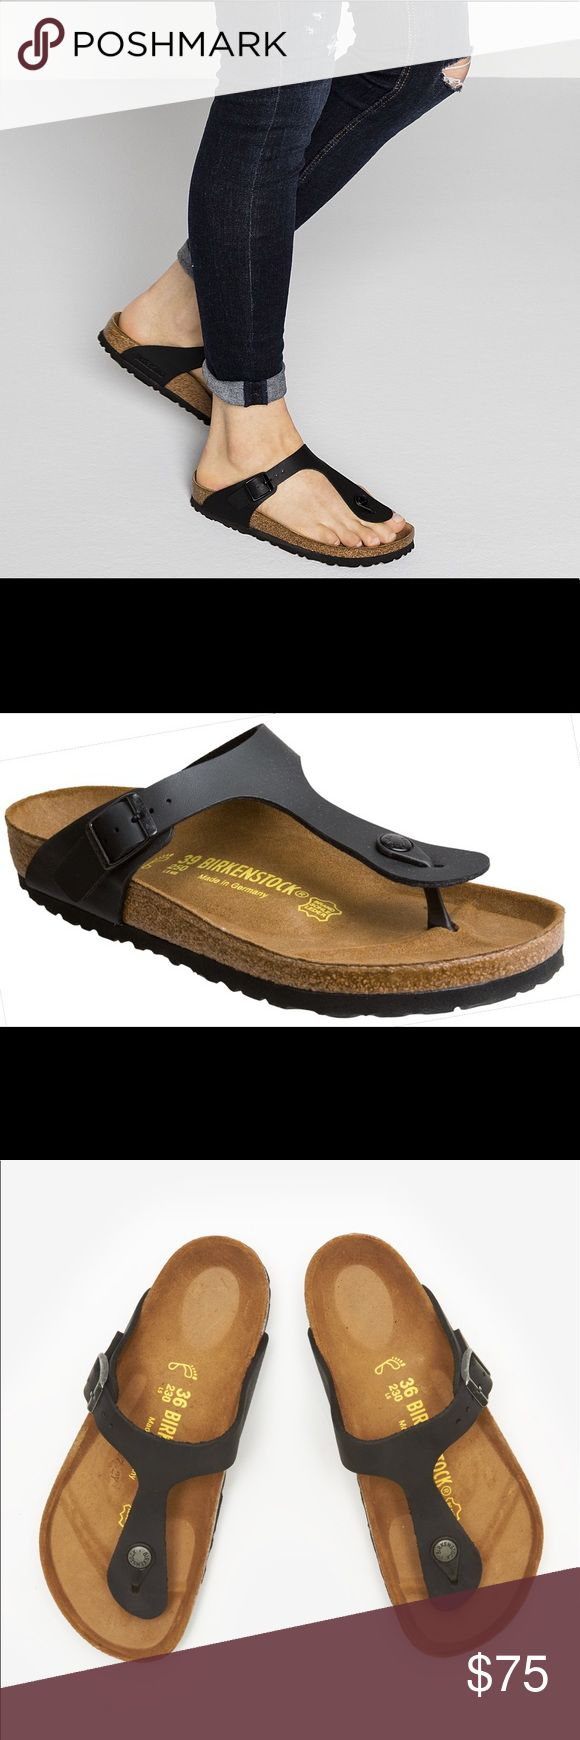 Birkenstock Gizeh sandals Black Birkenstock Gizeh sandals in black. Purchased last year and wore a couple times last summer. Bottoms show no signs of wear. Make an offer and these can be yours for years to come! Birkenstock Shoes Sandals